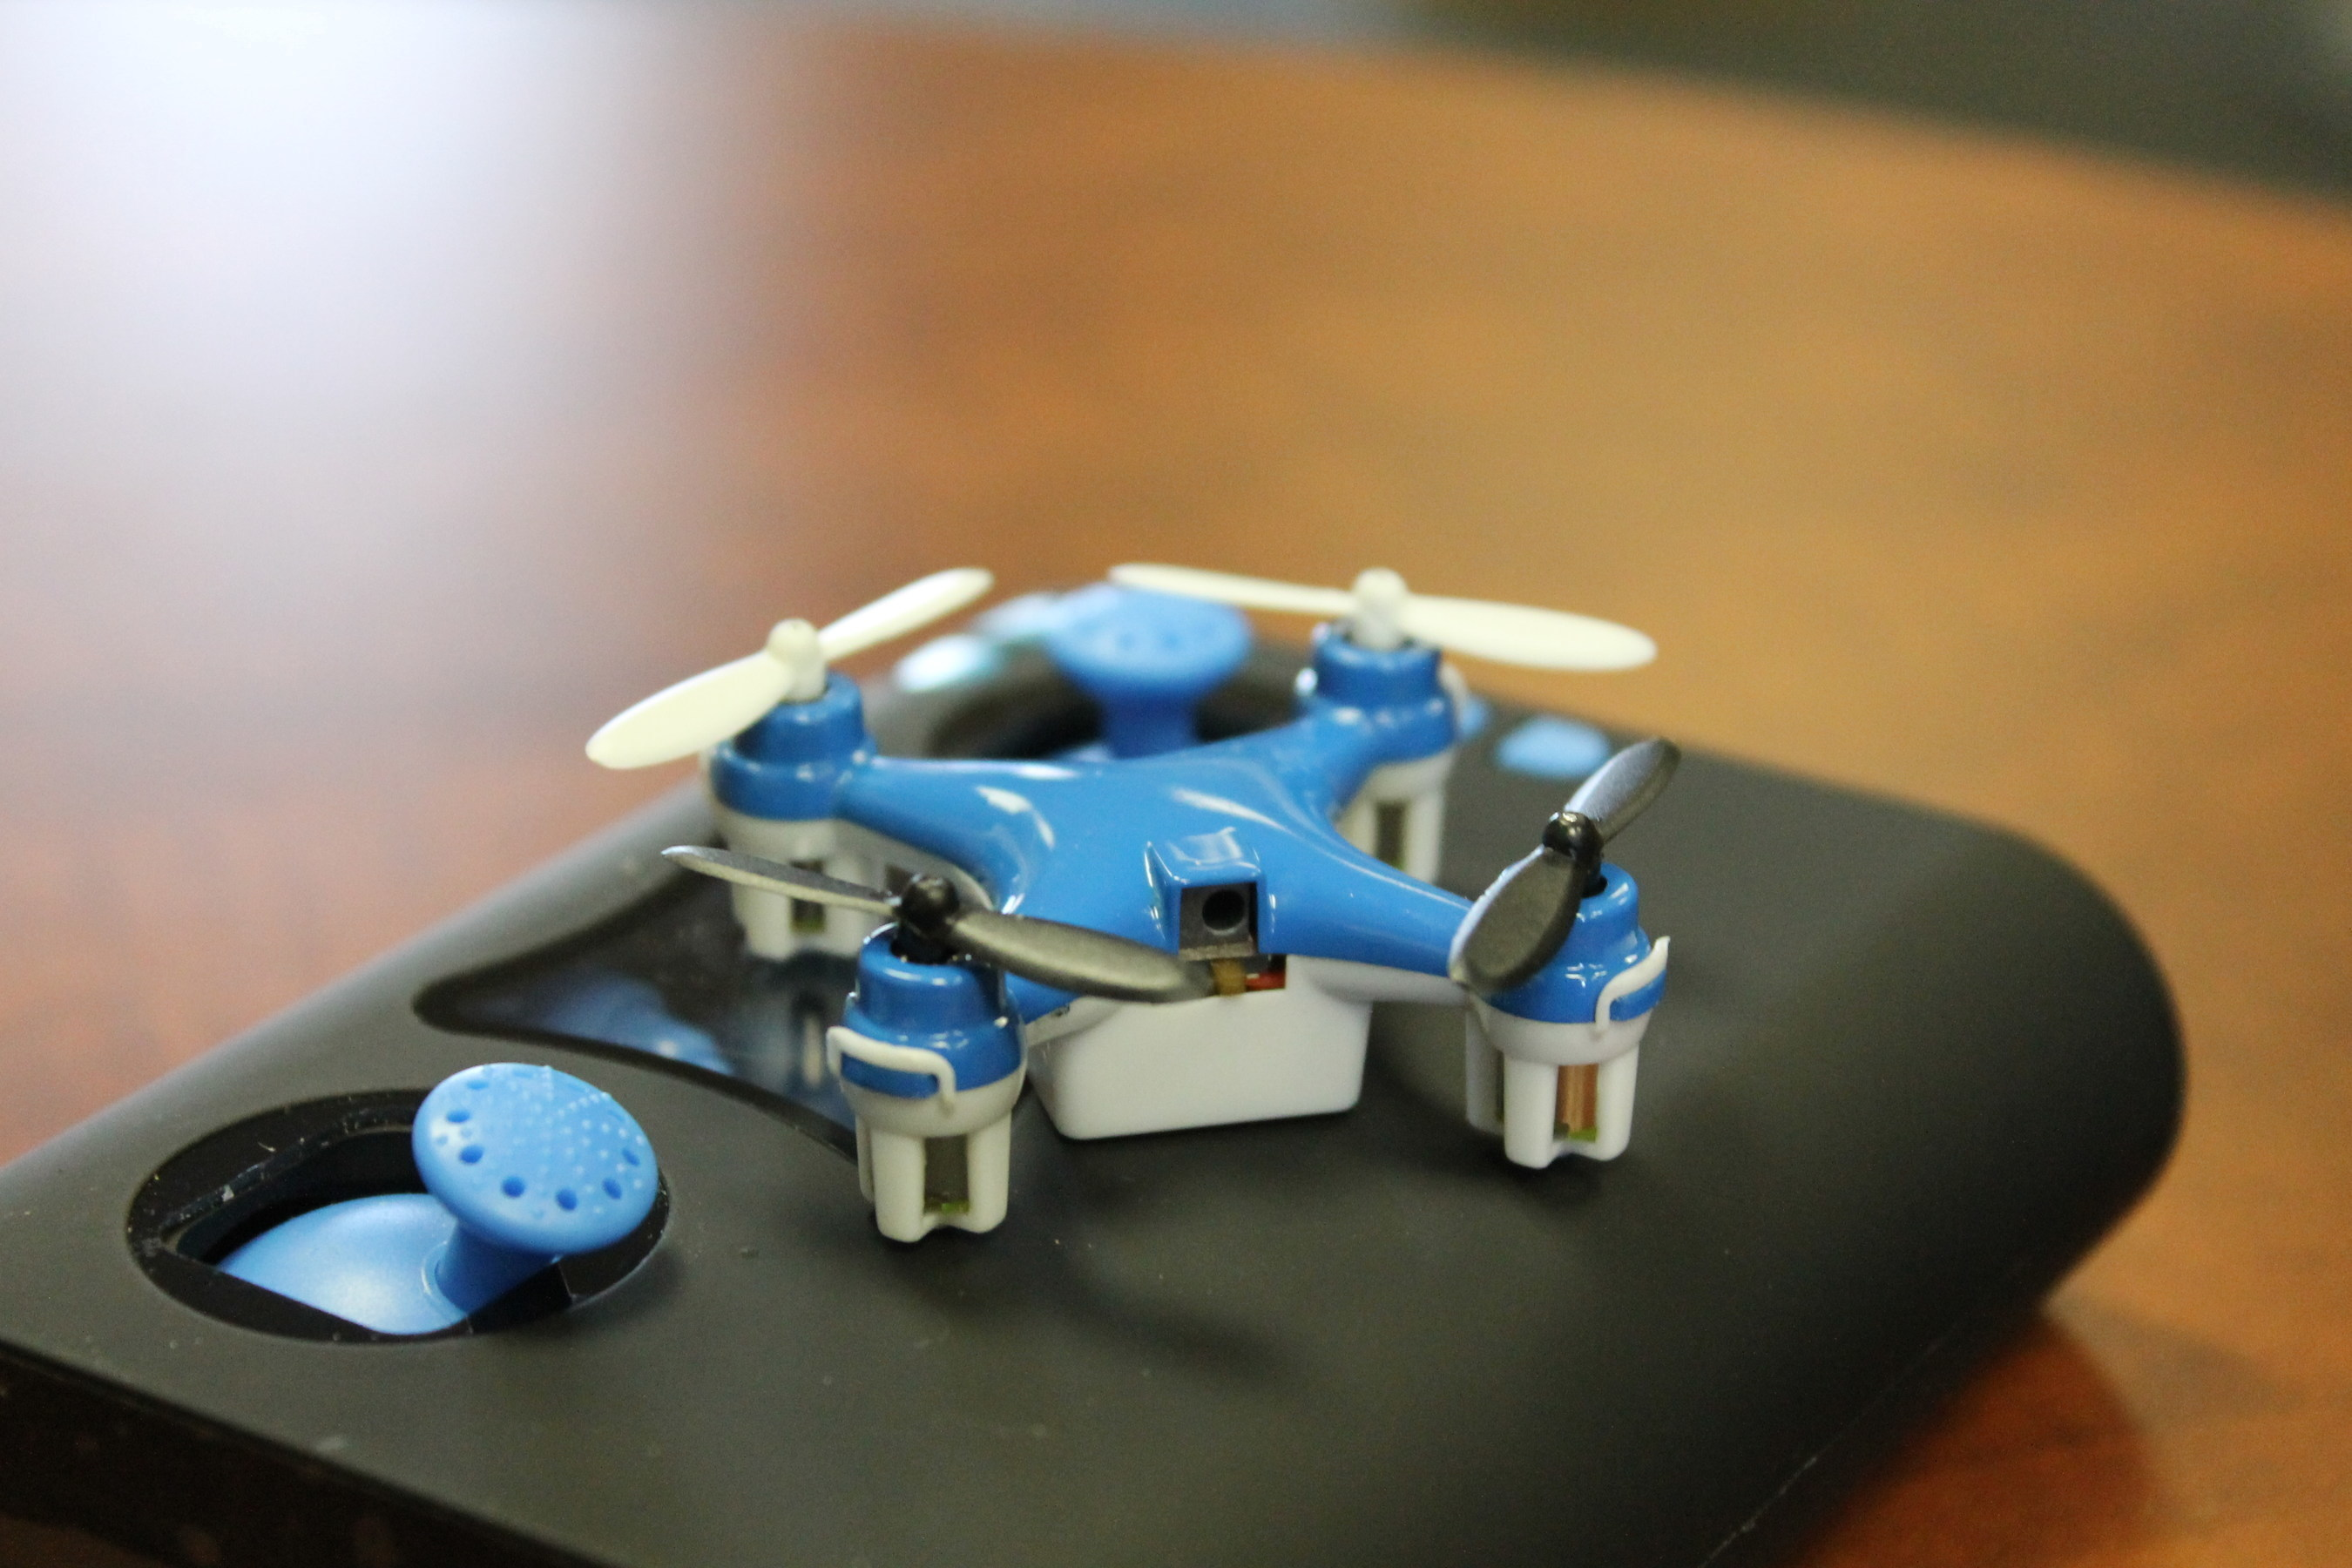 Wallet Drone'', The World's Smallest Quadcopter and Controller, Raises $26K in Under Five Days on Indiegogo